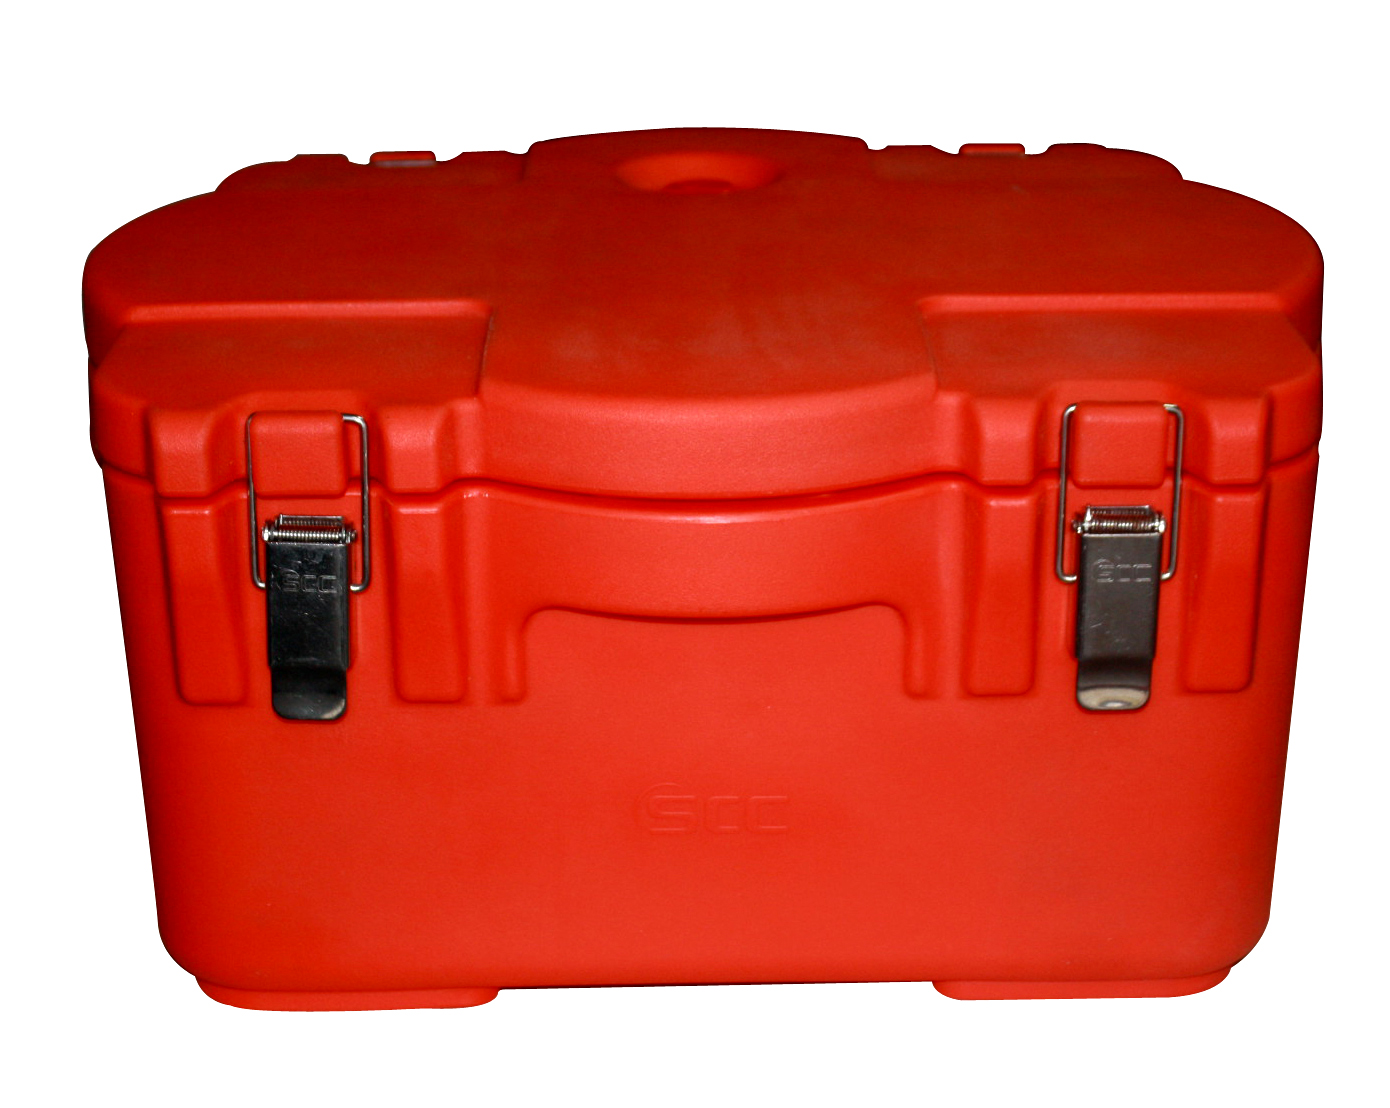 26L Insulated food carrier SB2-A26